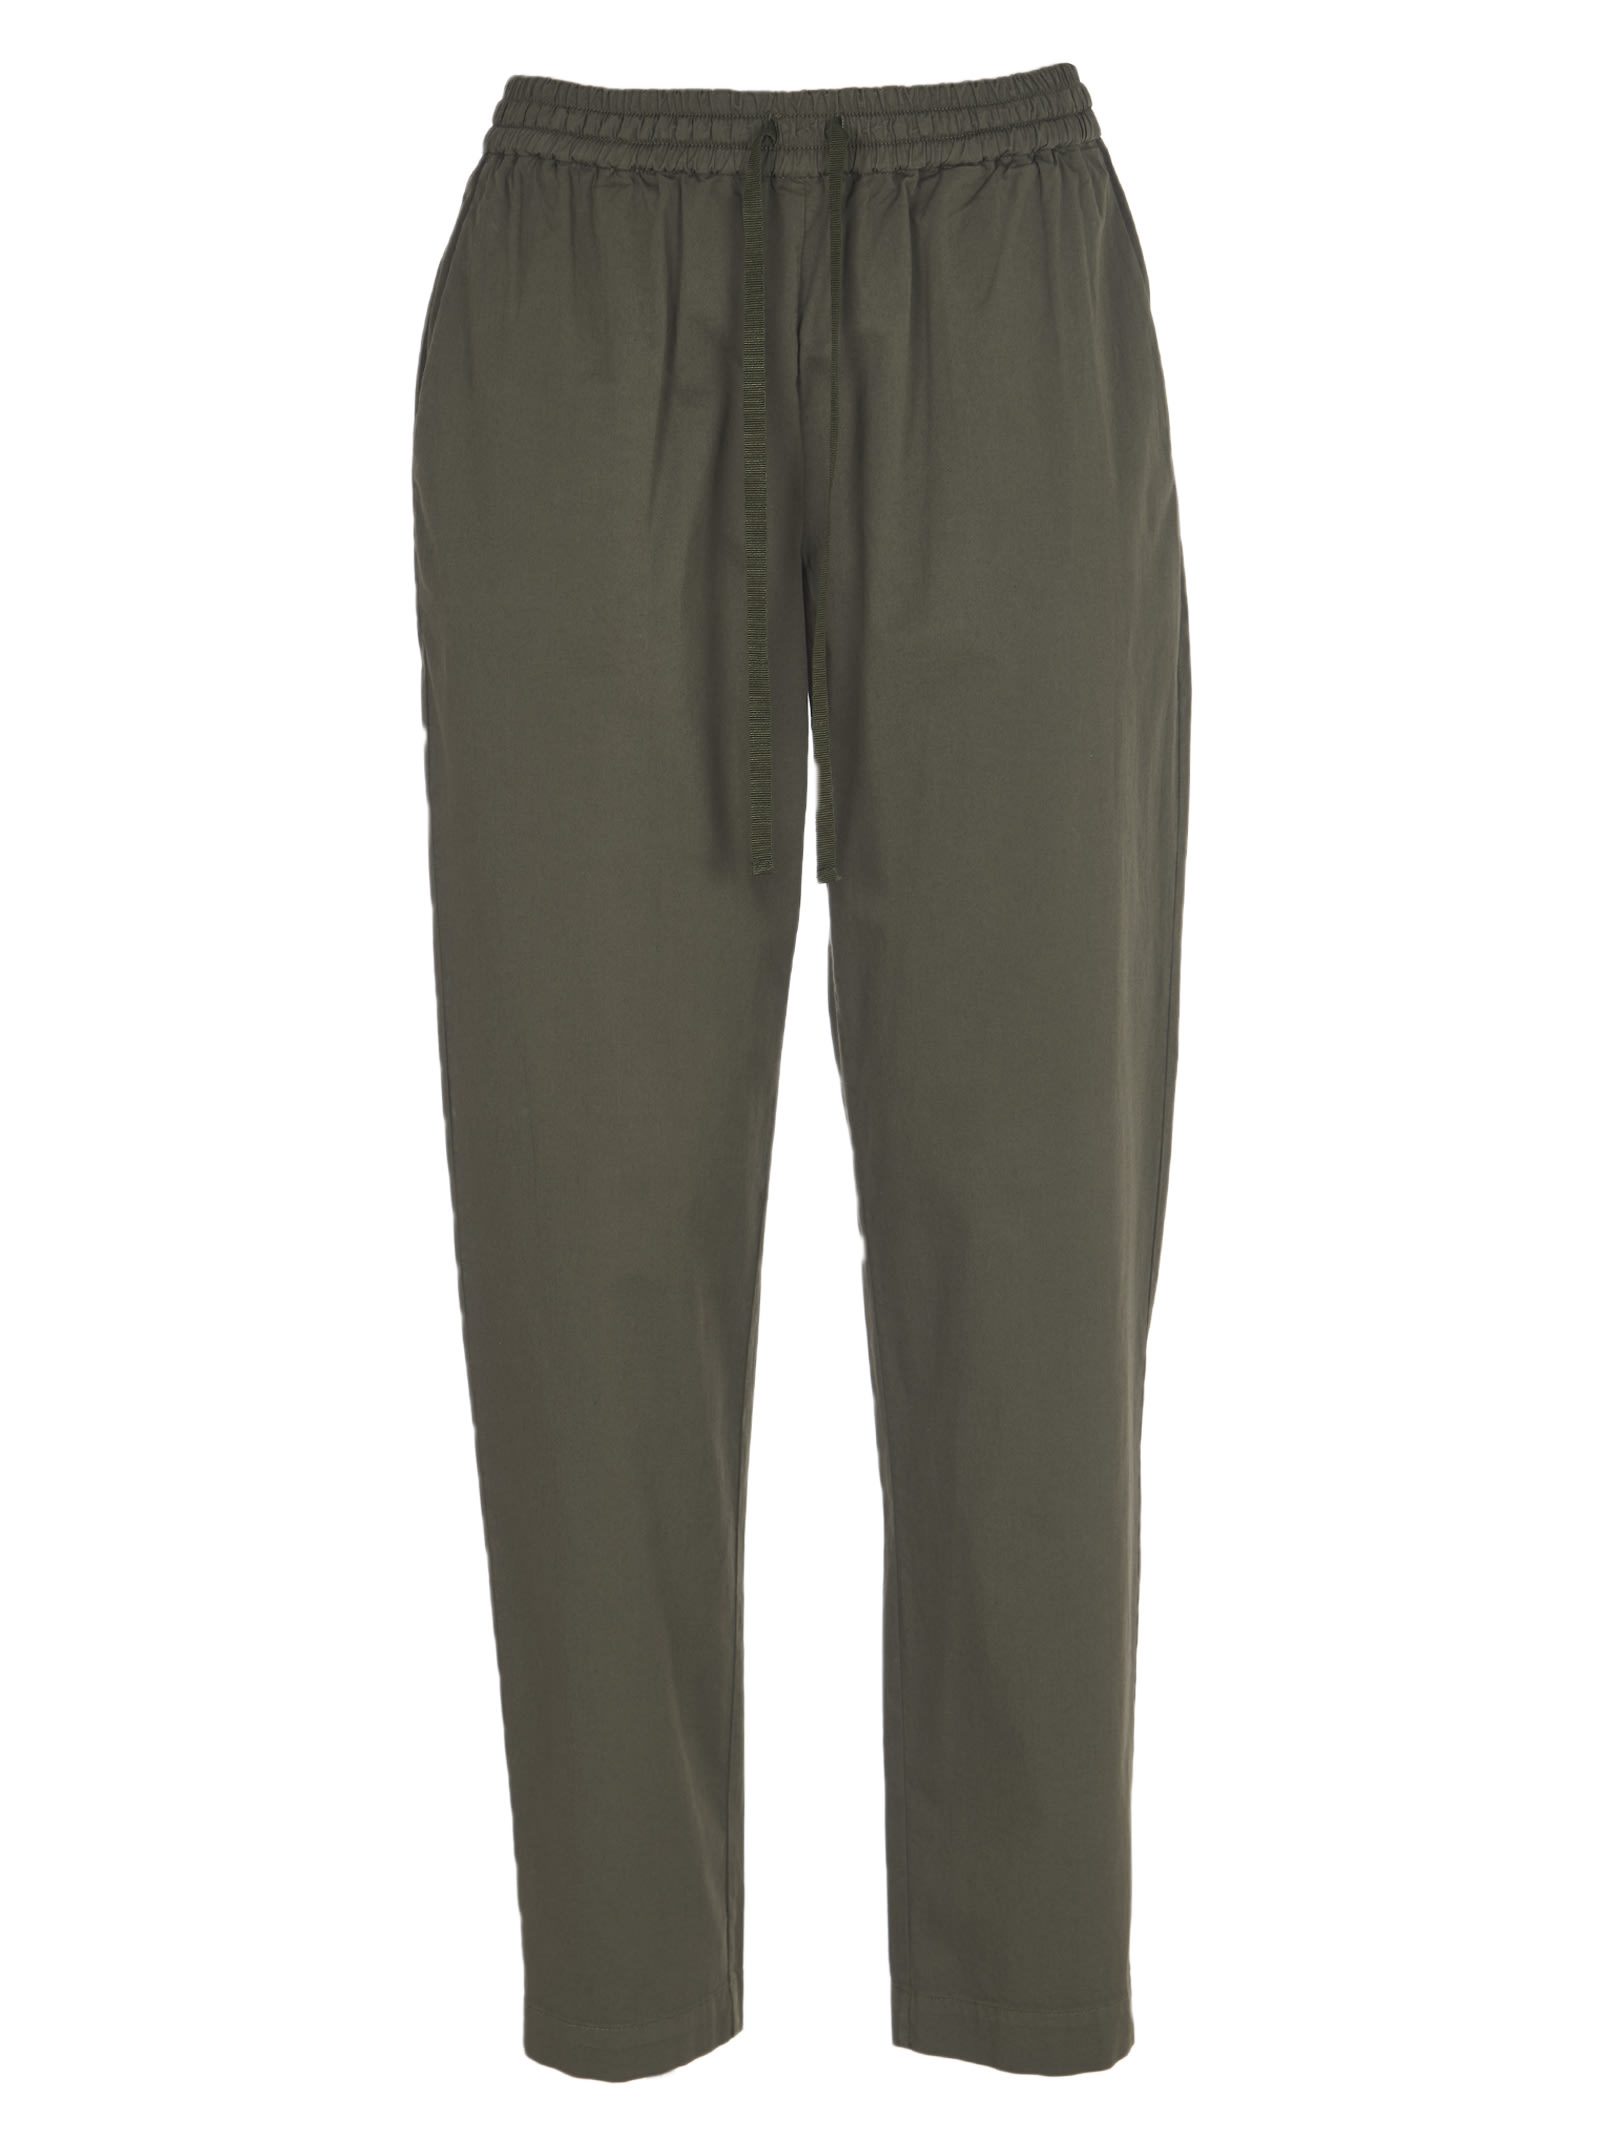 Semicouture GREEN COTTON TROUSERS